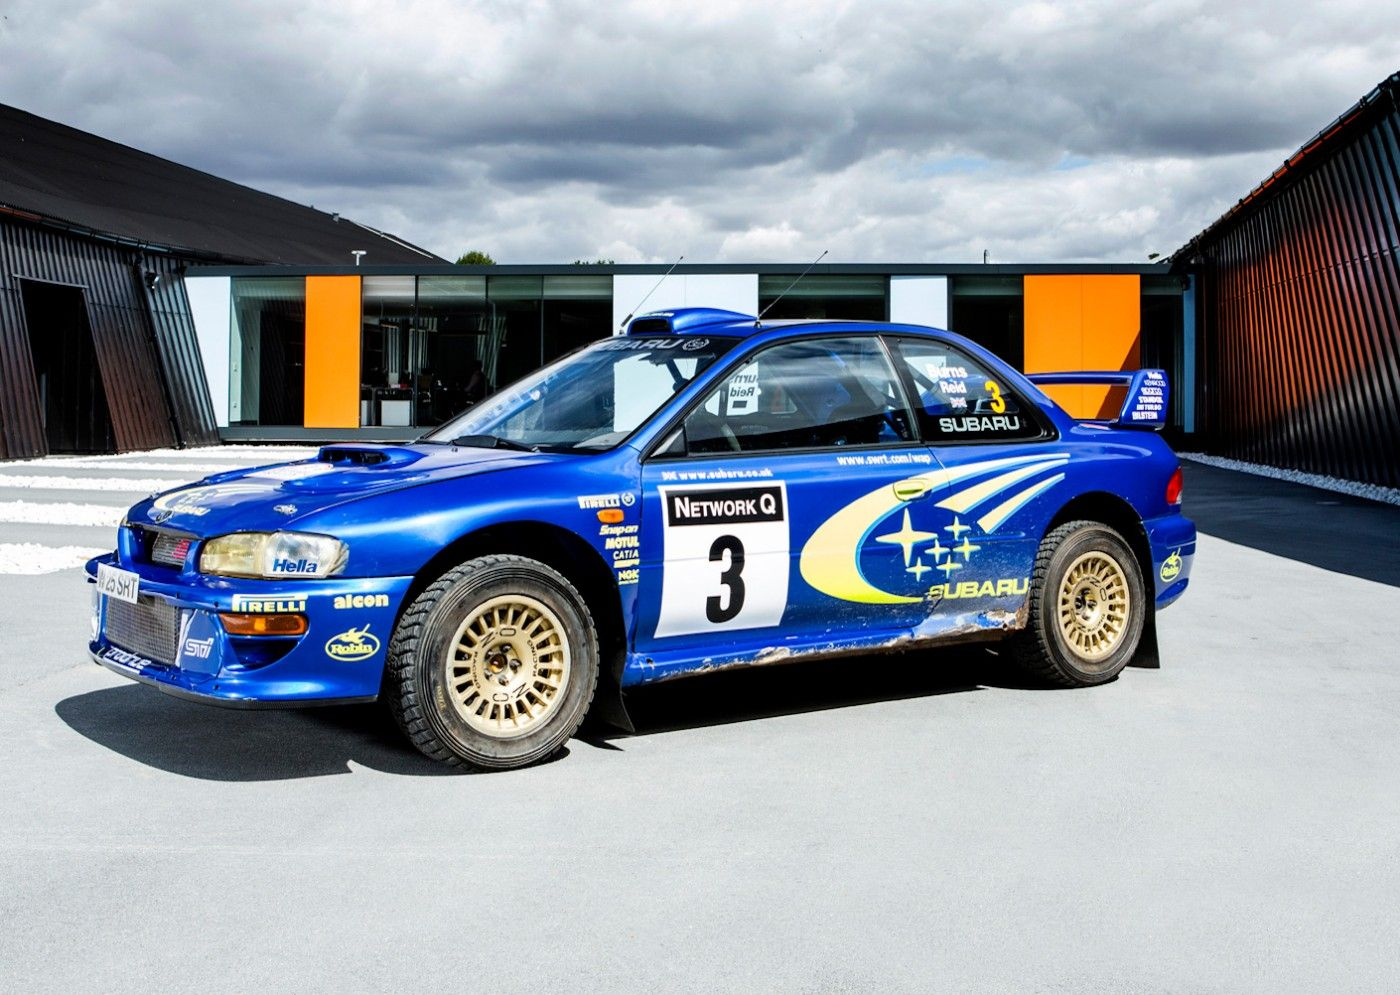 Subaru_Impreza_WRC_Richard Burns_02